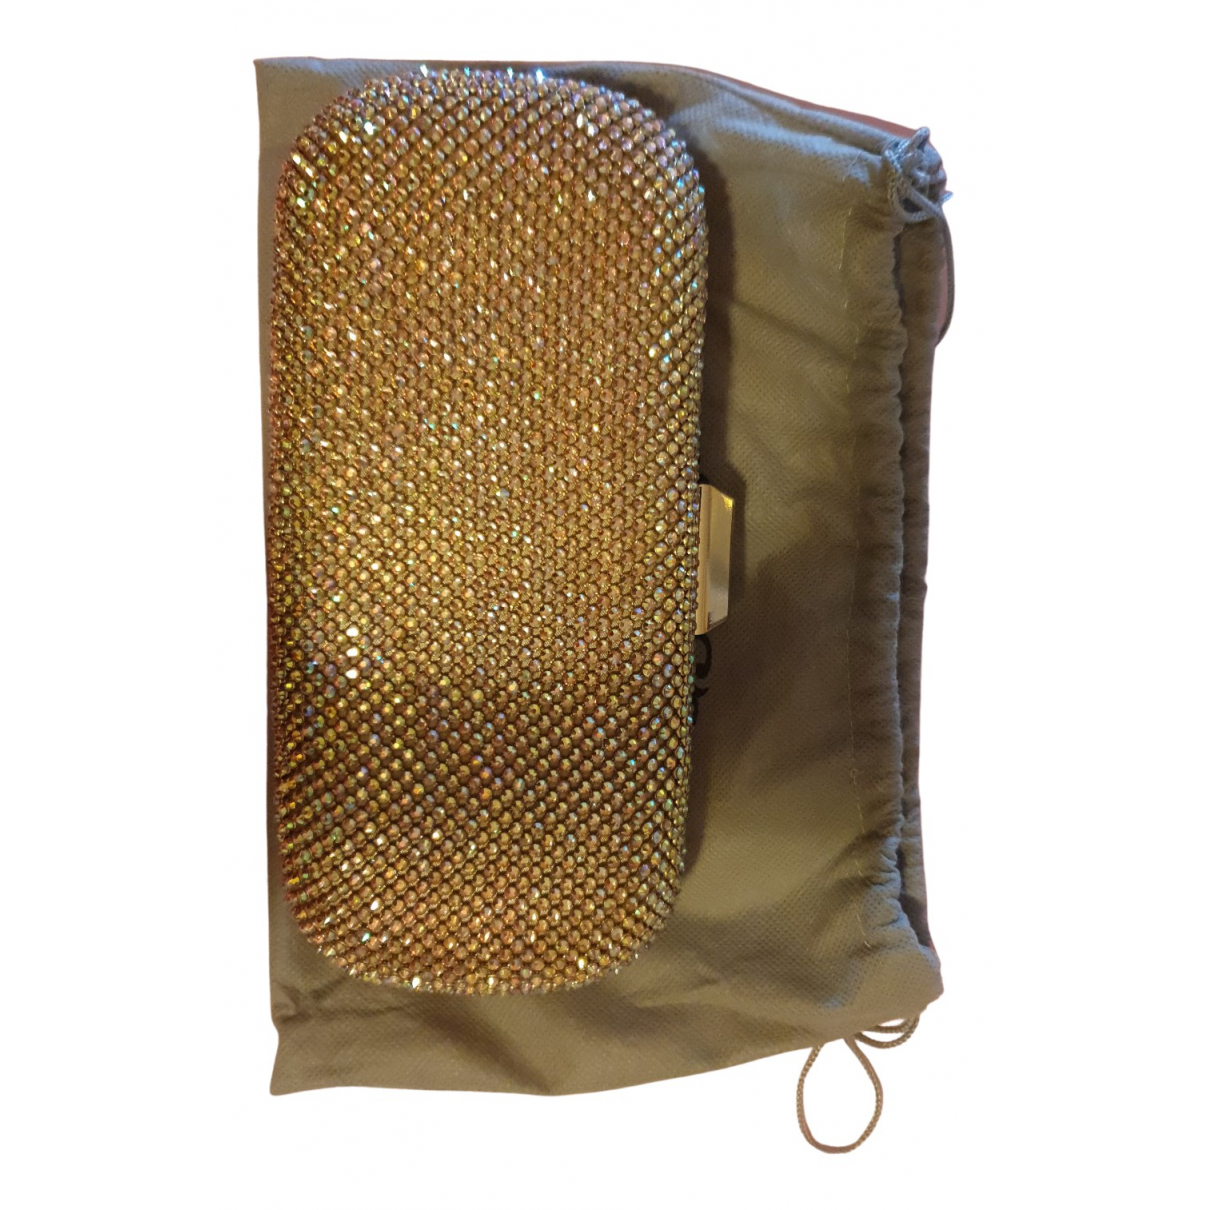 Liu.jo N Gold Glitter Clutch bag for Women N